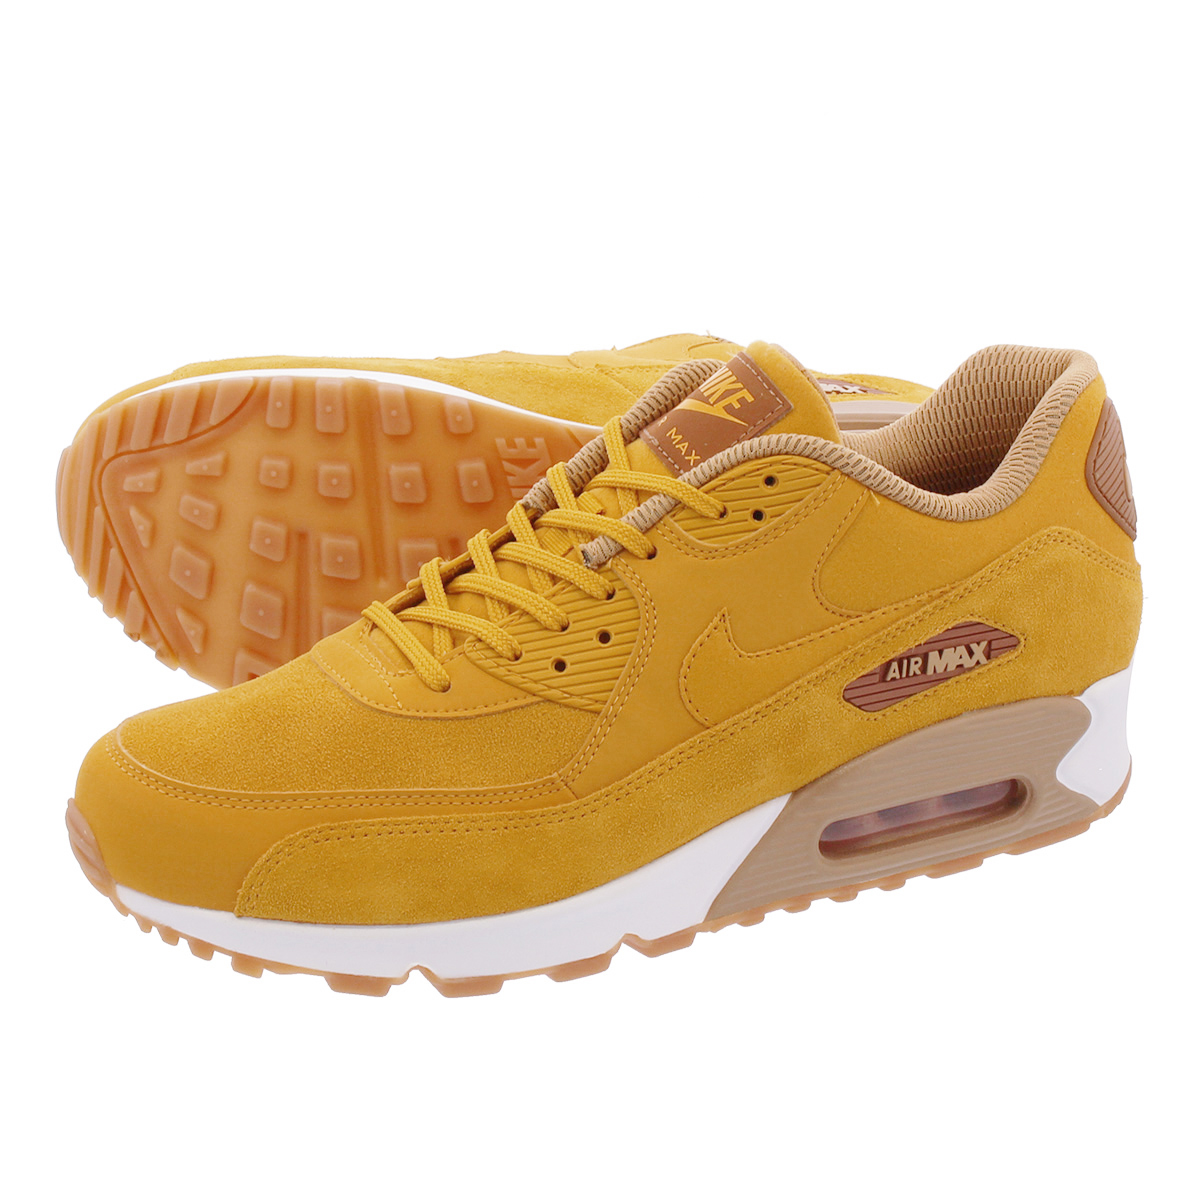 Details about Nike Air Max 90 SE Mineral Yellow Womens Size 6 881105 700